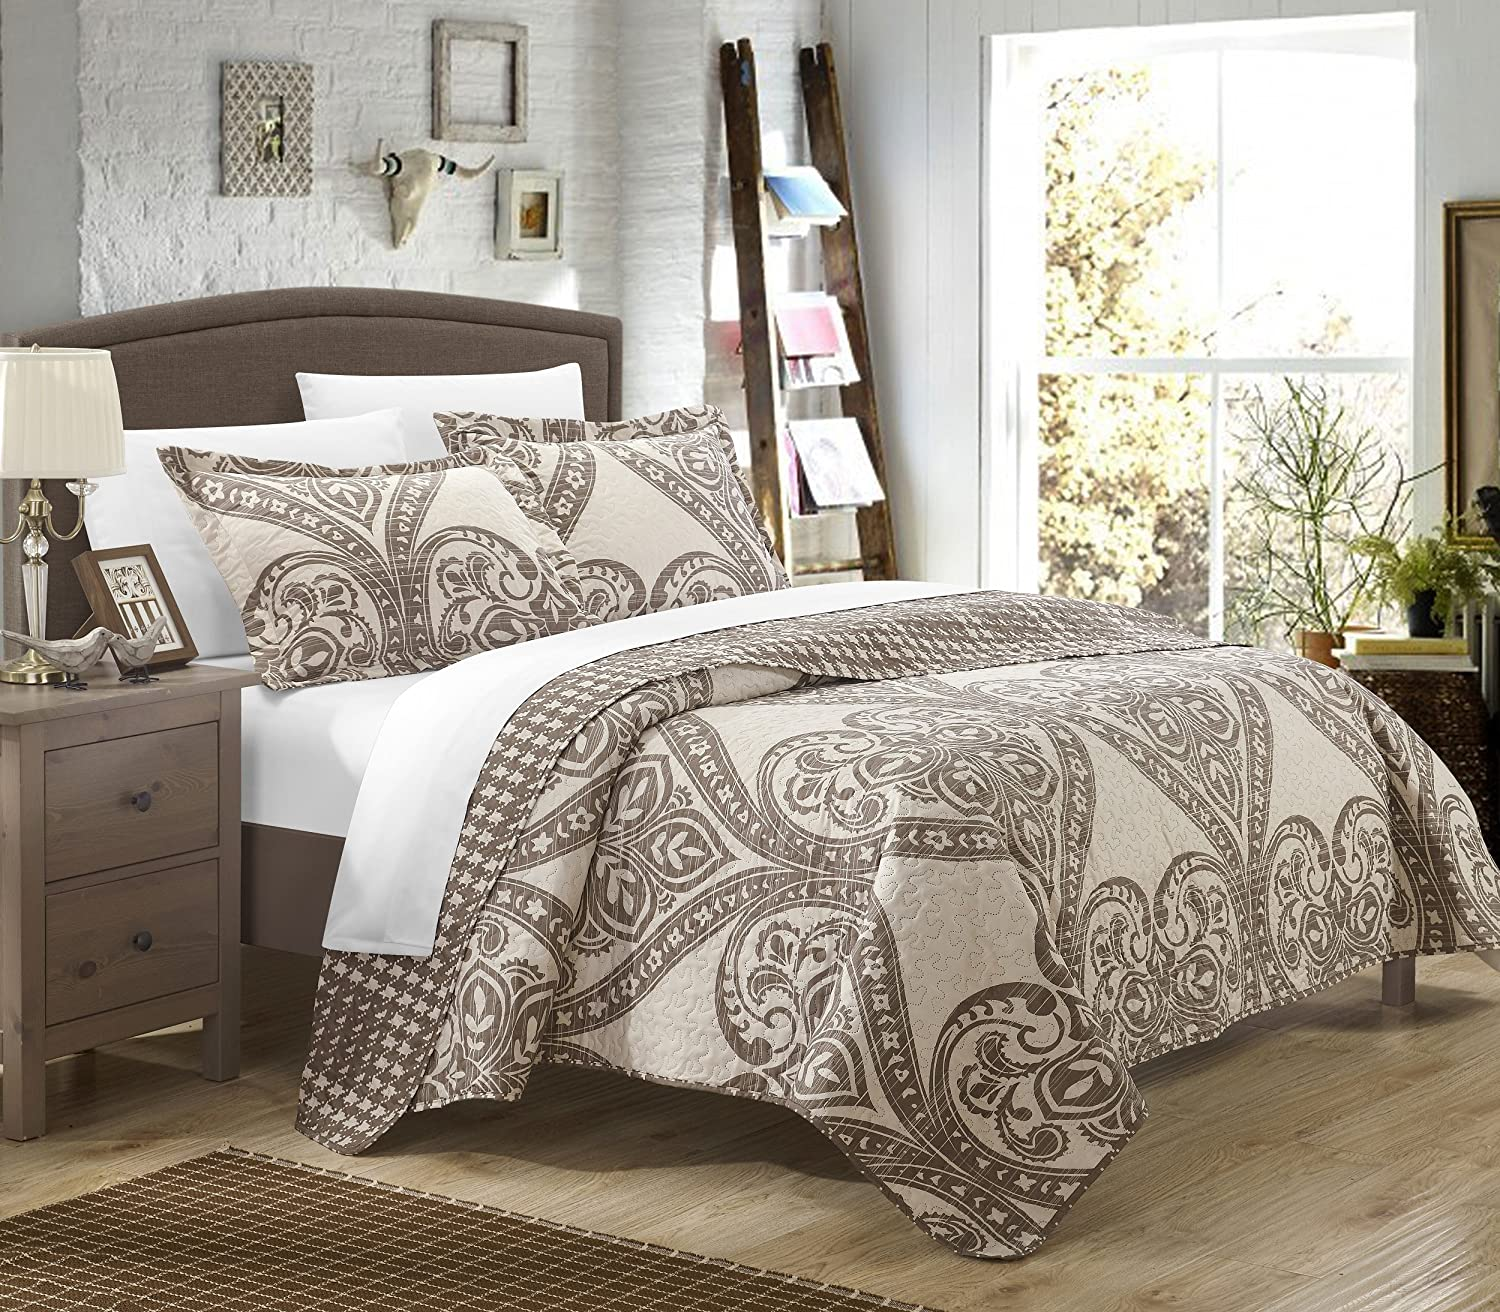 Chic Home 2 Piece Napoli Reversible Printed Quilt Set, Twin, Beige